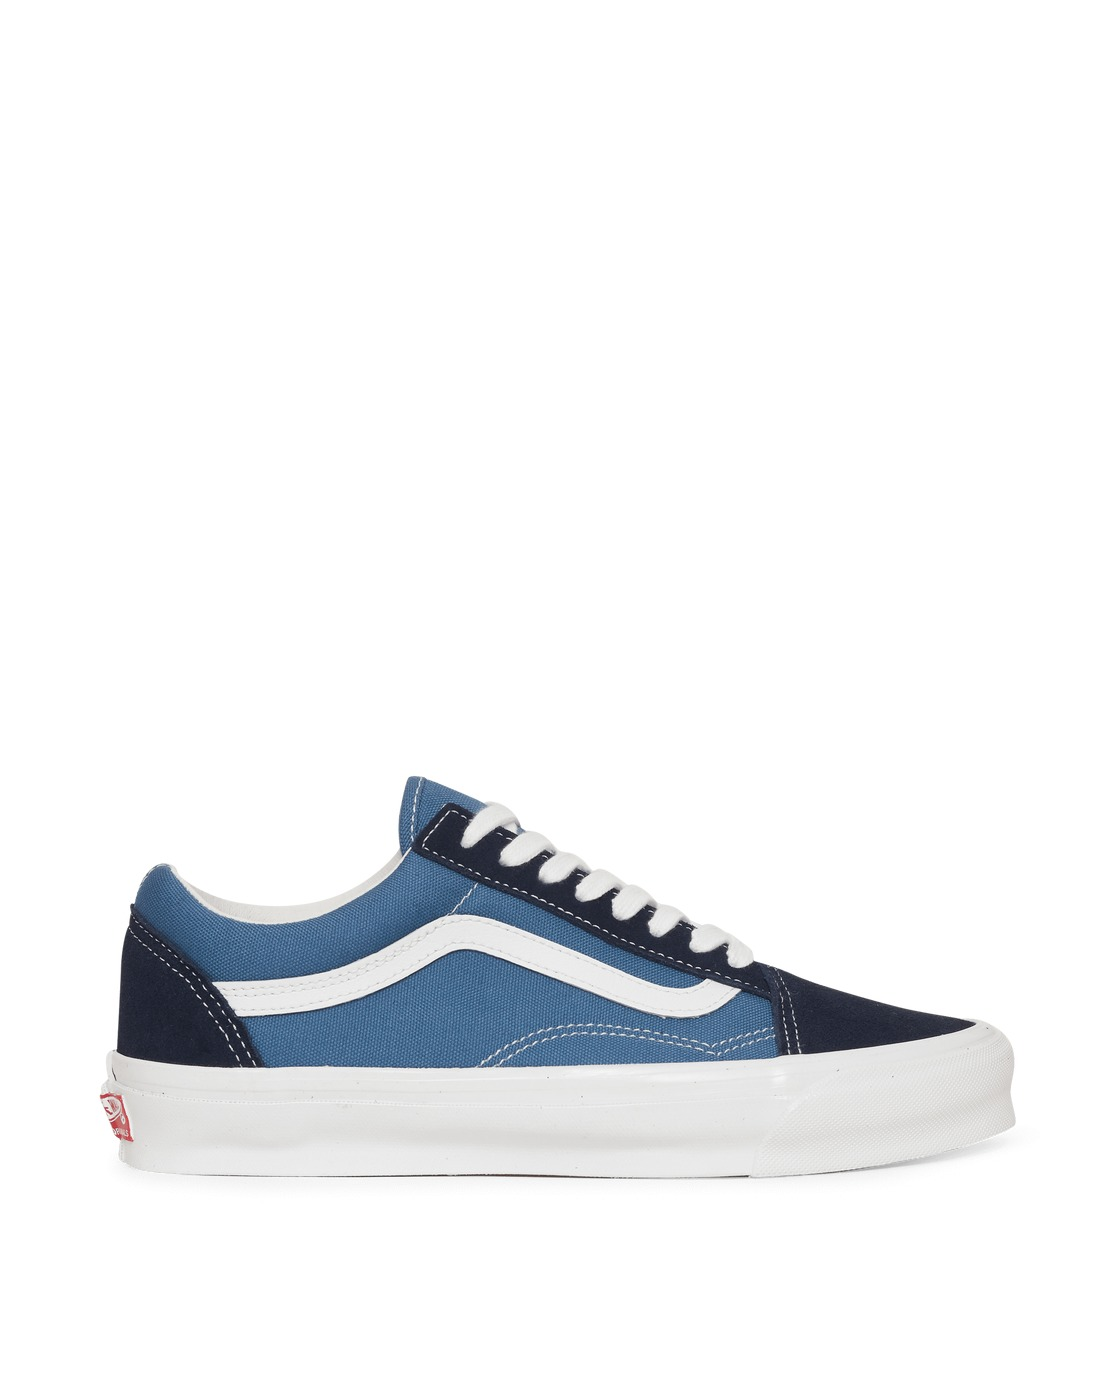 Photo: Vans Og Old Skool Lx Sneakers Navy/Stvnvy